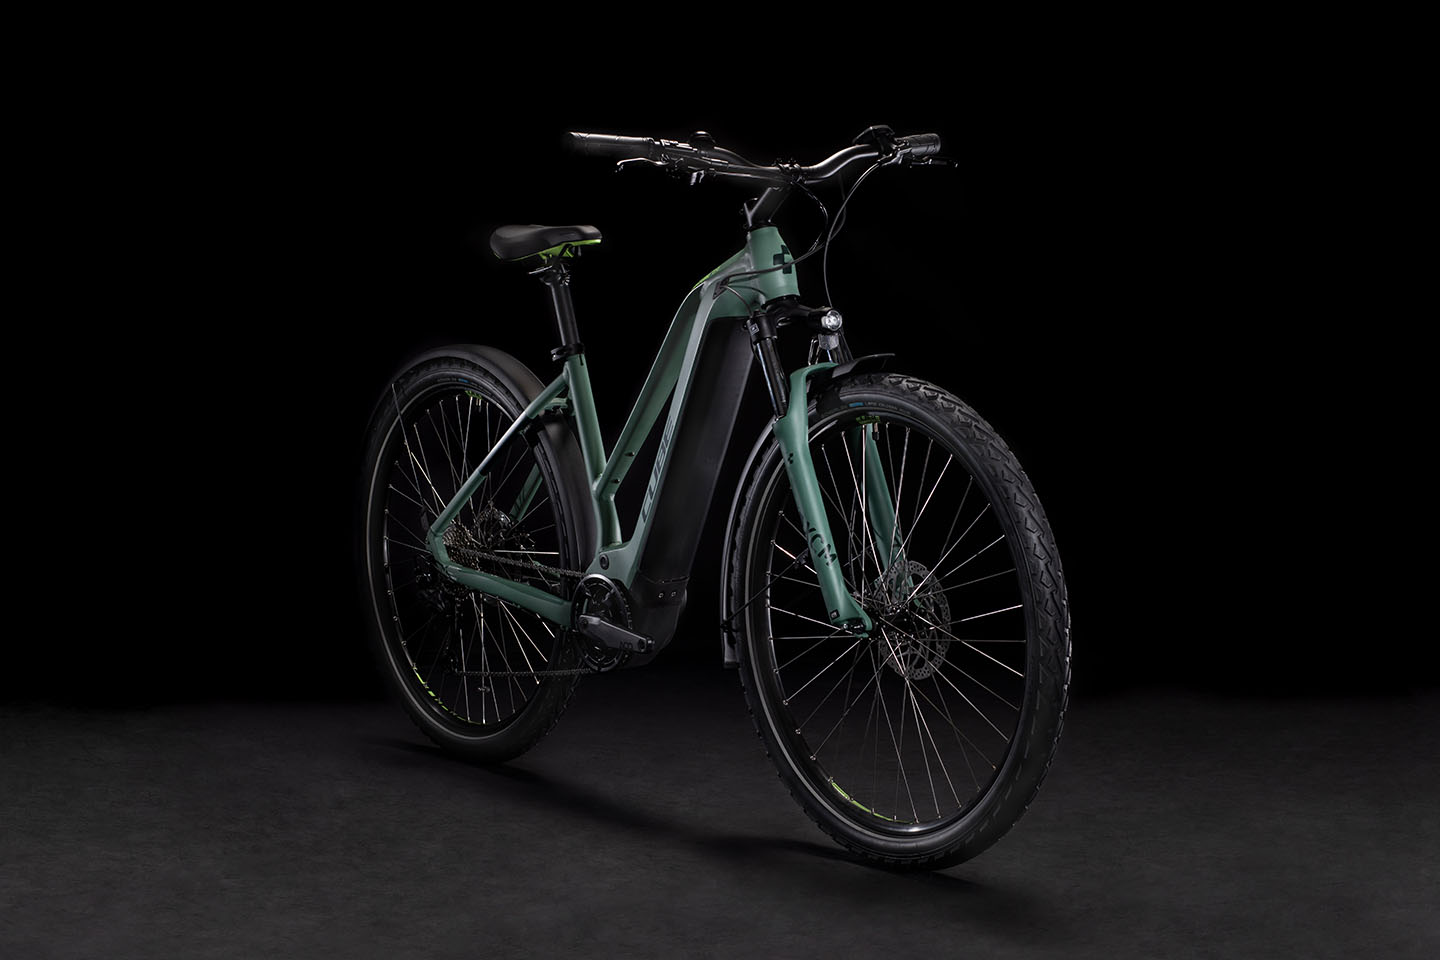 https://w8w5m3f8.stackpathcdn.com/22485/vtc-electrique-cube-nature-hybrid-one-allroad-500-ou-625wh-cadre-mixte.jpg